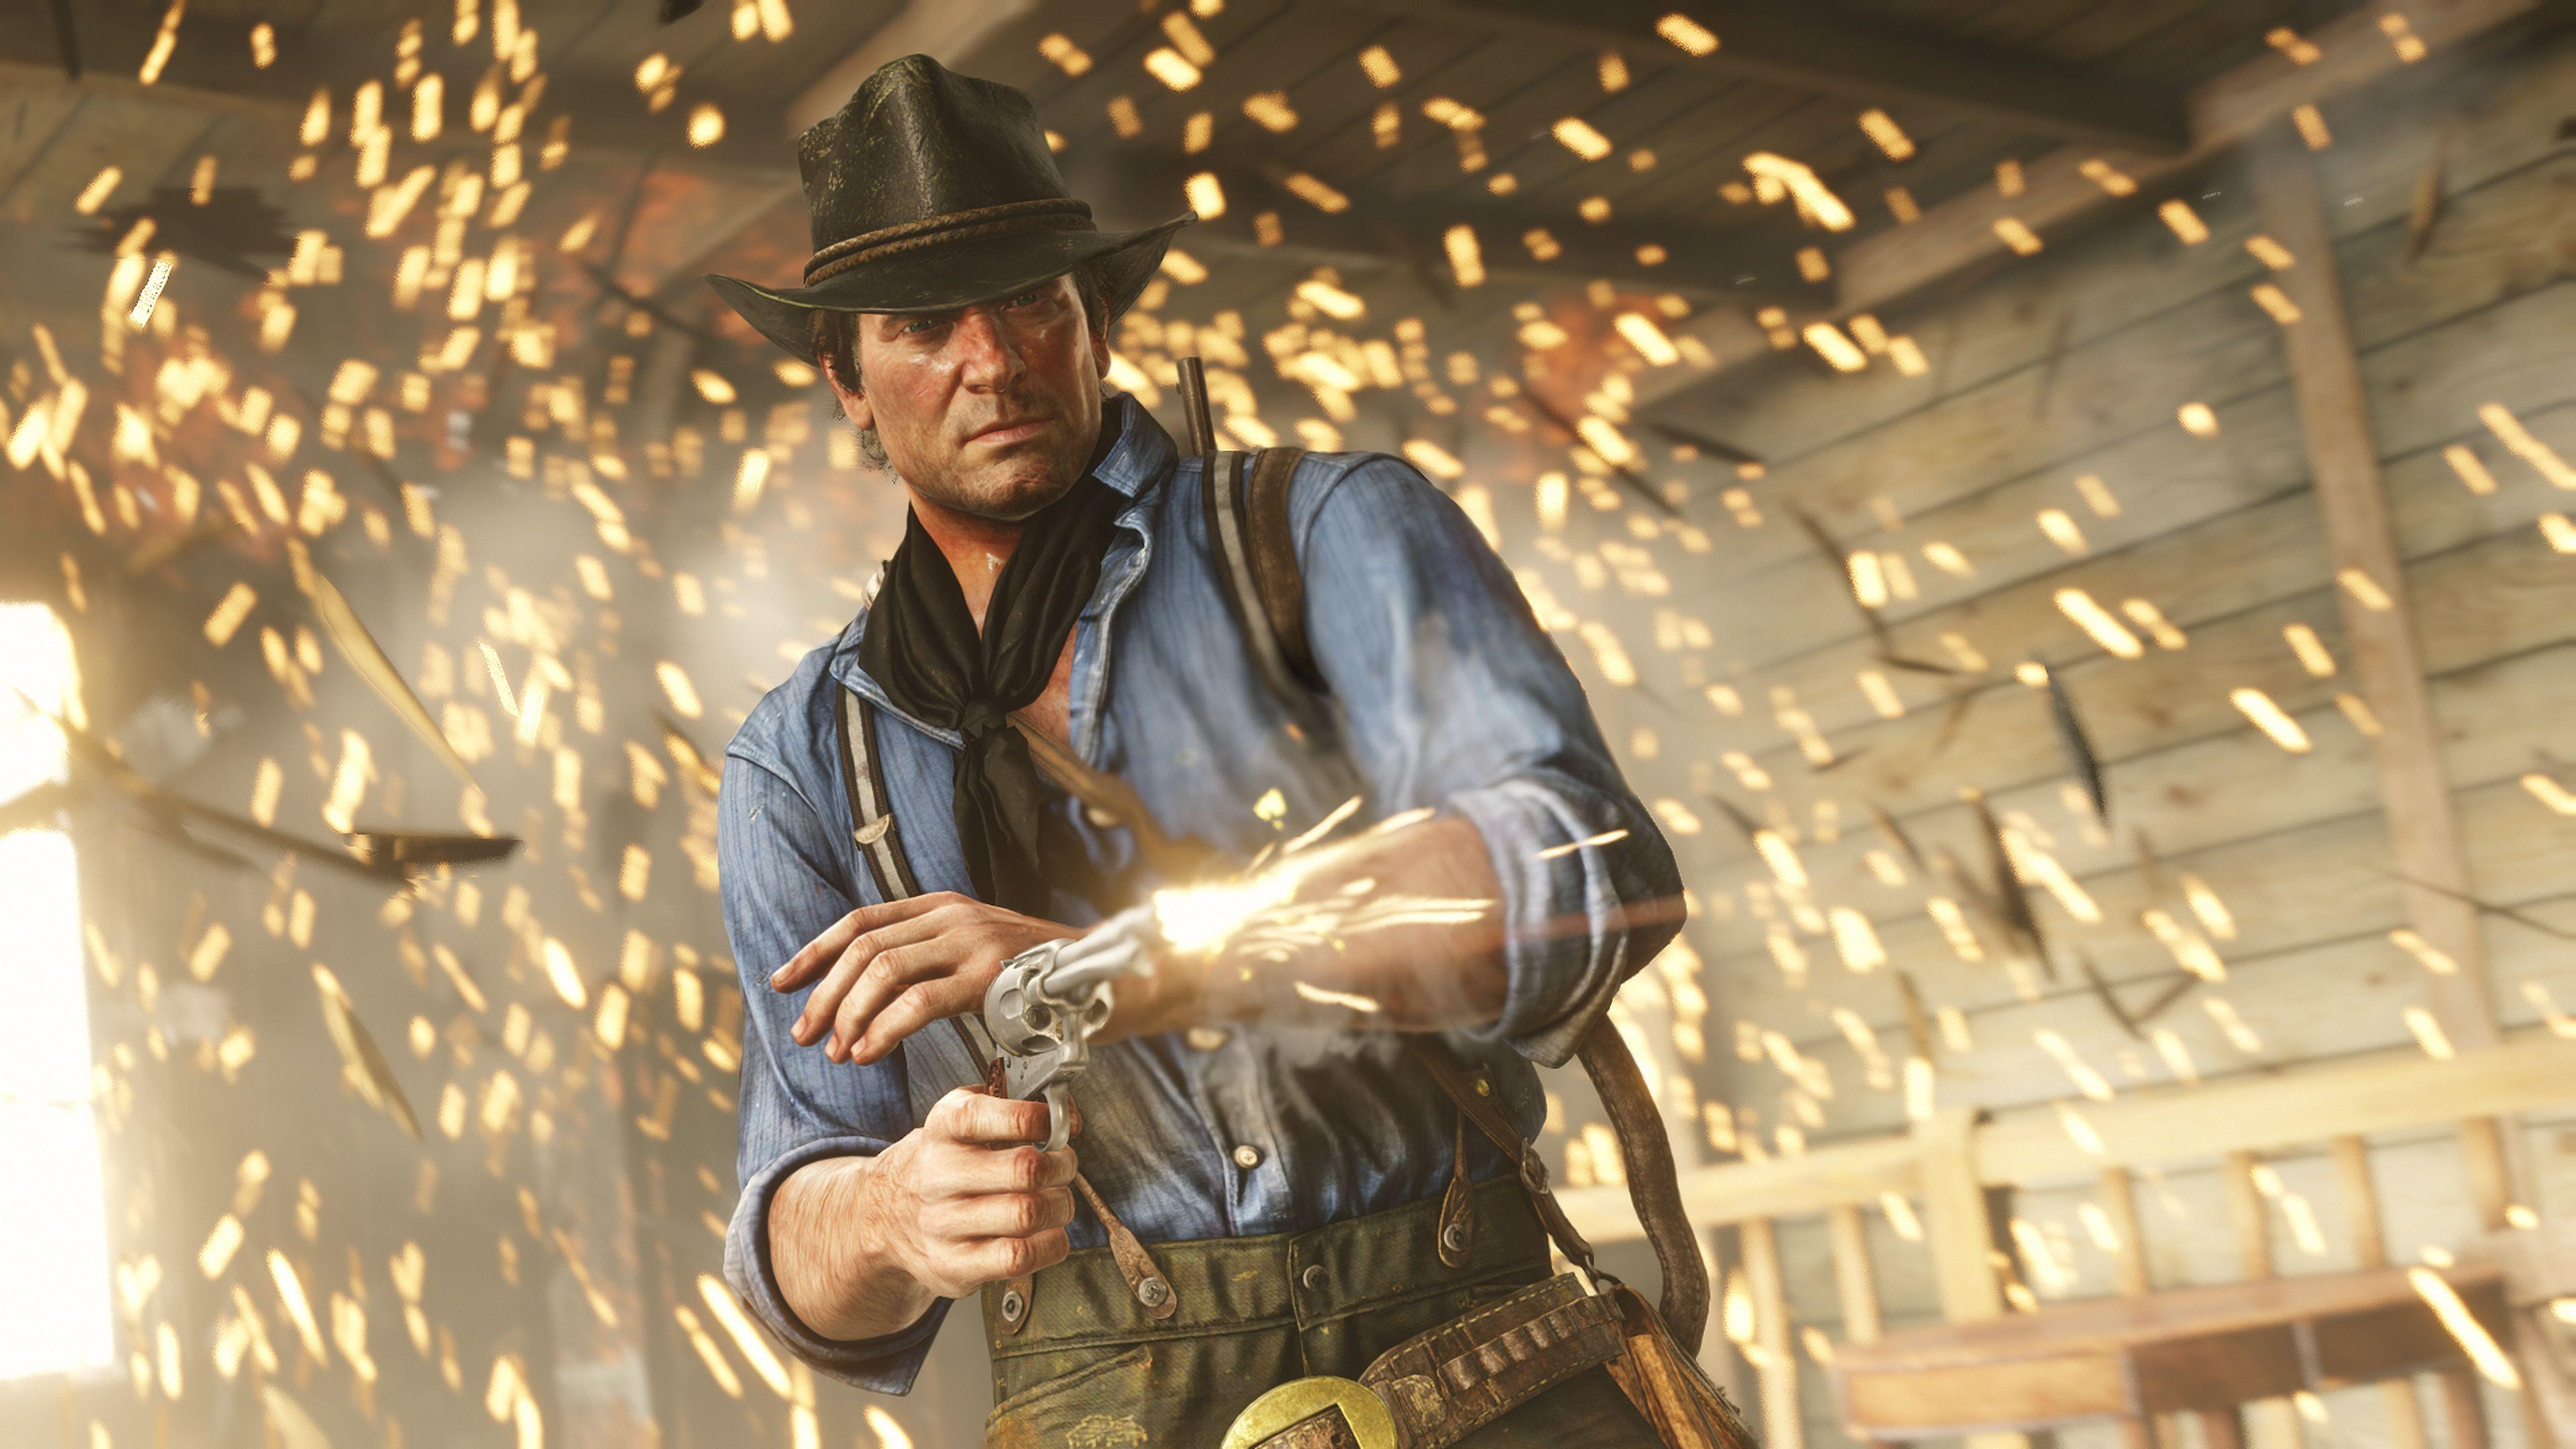 Red Dead Redemption 2 - Arthur Morgan, wearing a brown hat, blue shirt, and black neckerchief, fires his revolver through a hale of sparks.